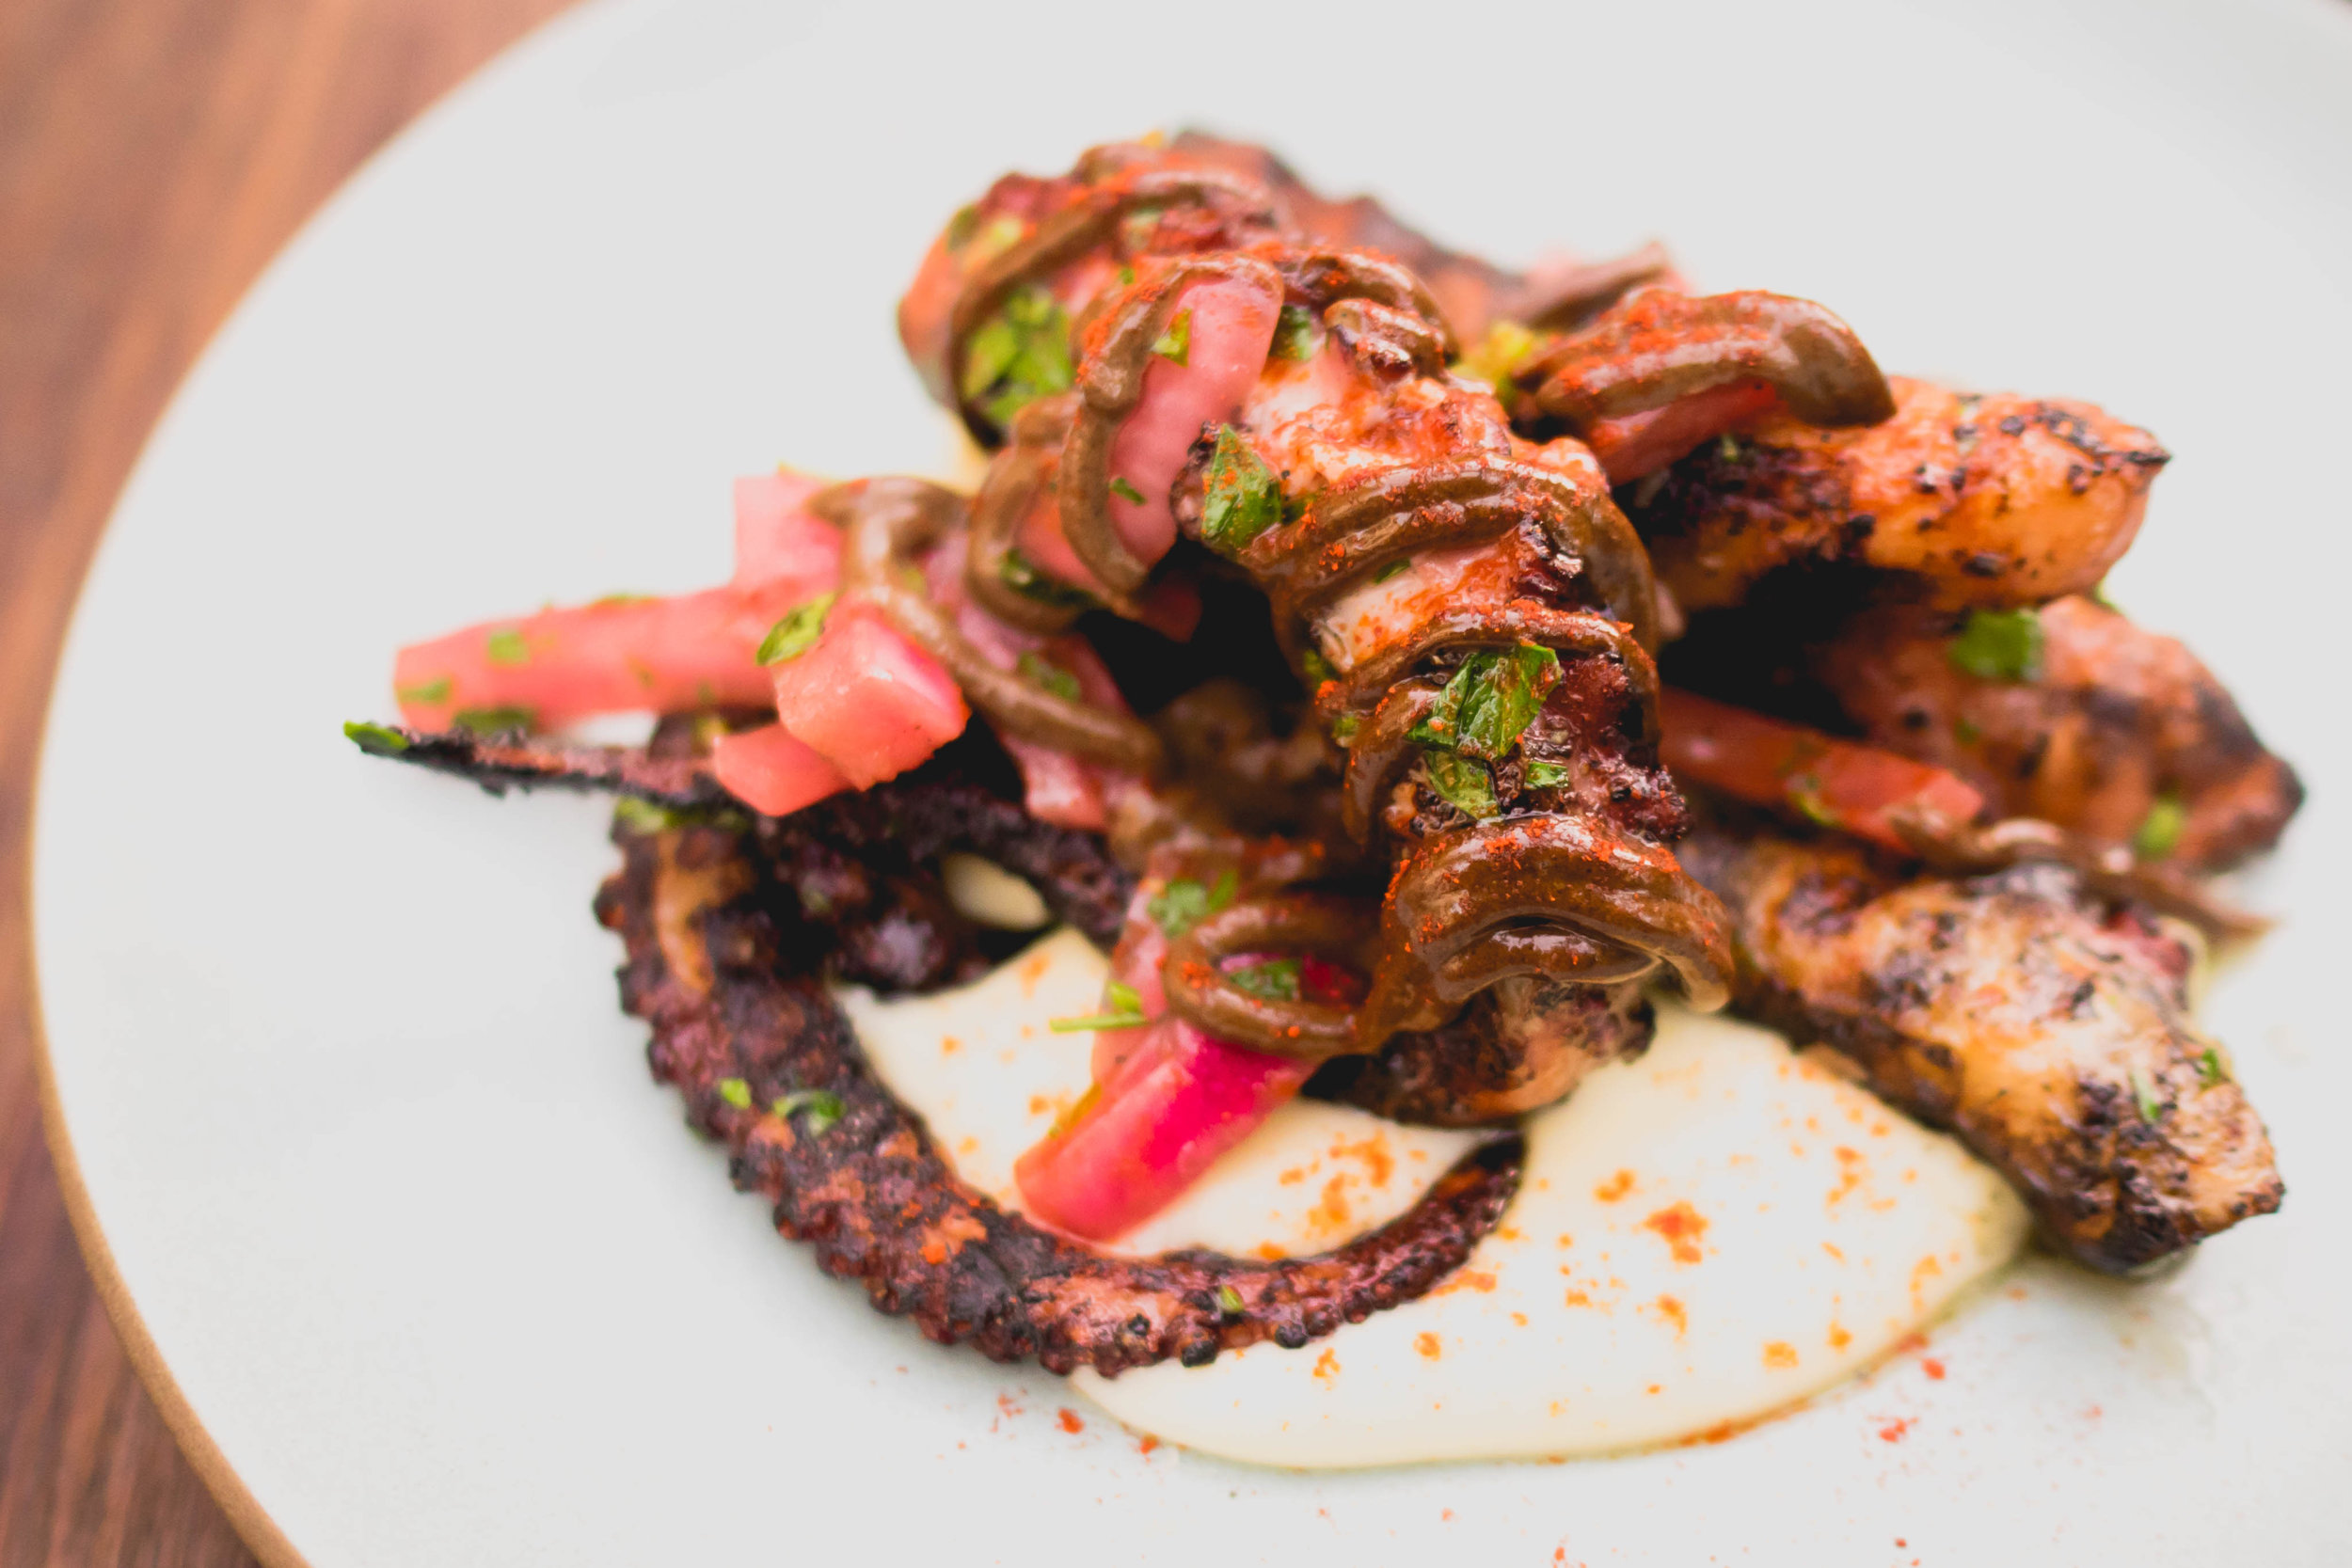 pulpo : spanish octopus, black garlic aioli, potato, pickled red onion.